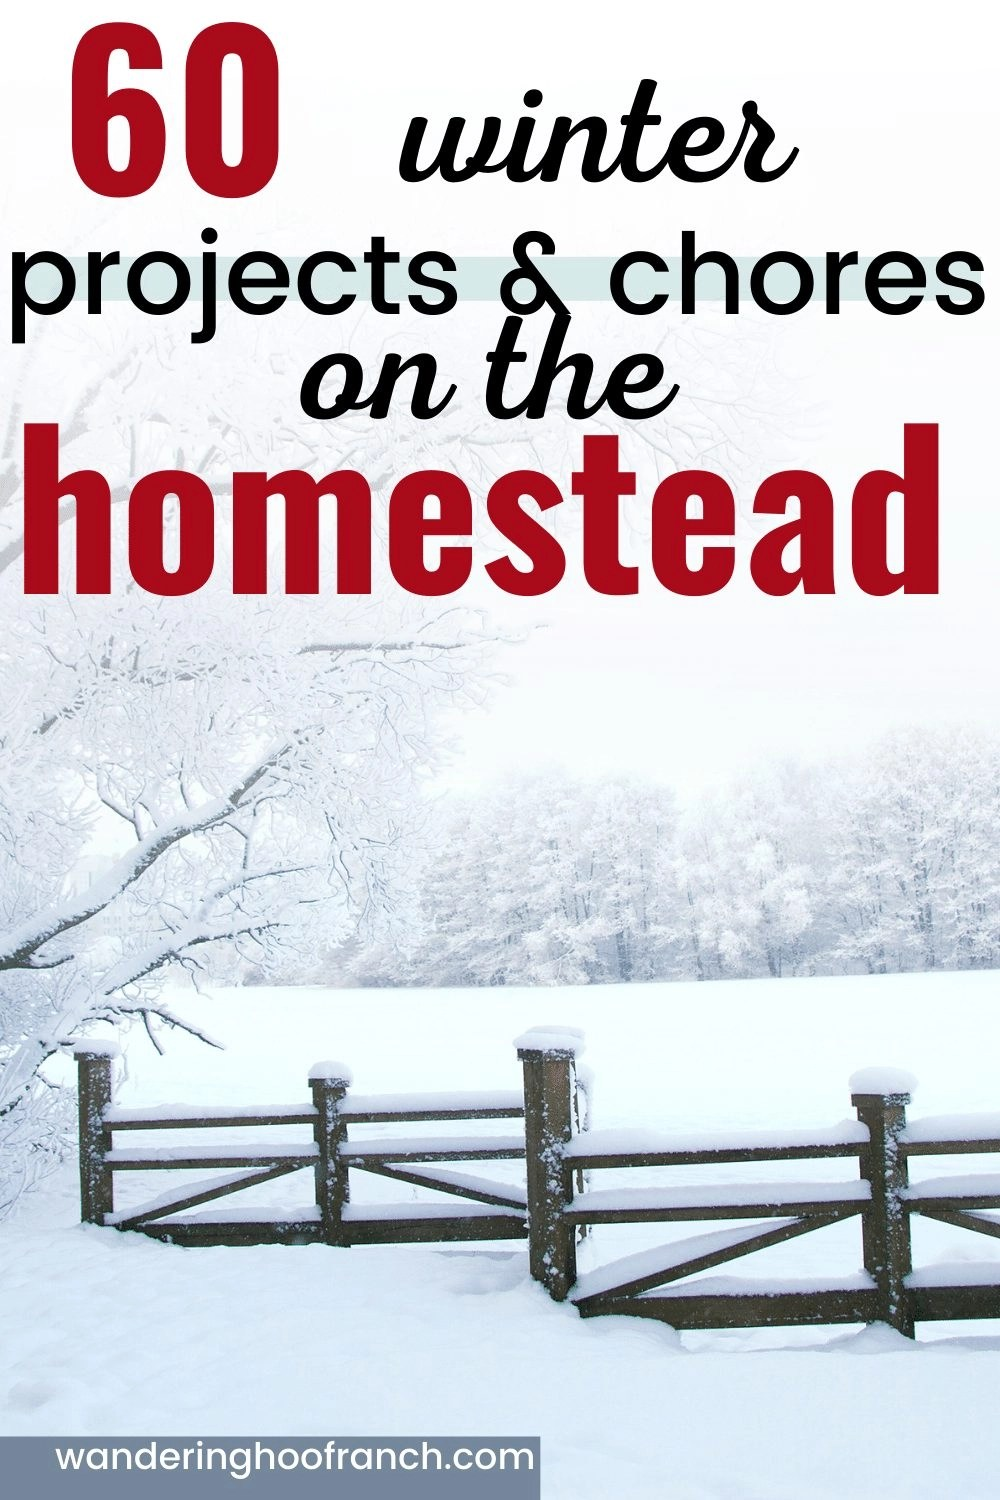 60 winter project and chores on the homestead pin image, words and blanket of snow on homestead field nd wood fence